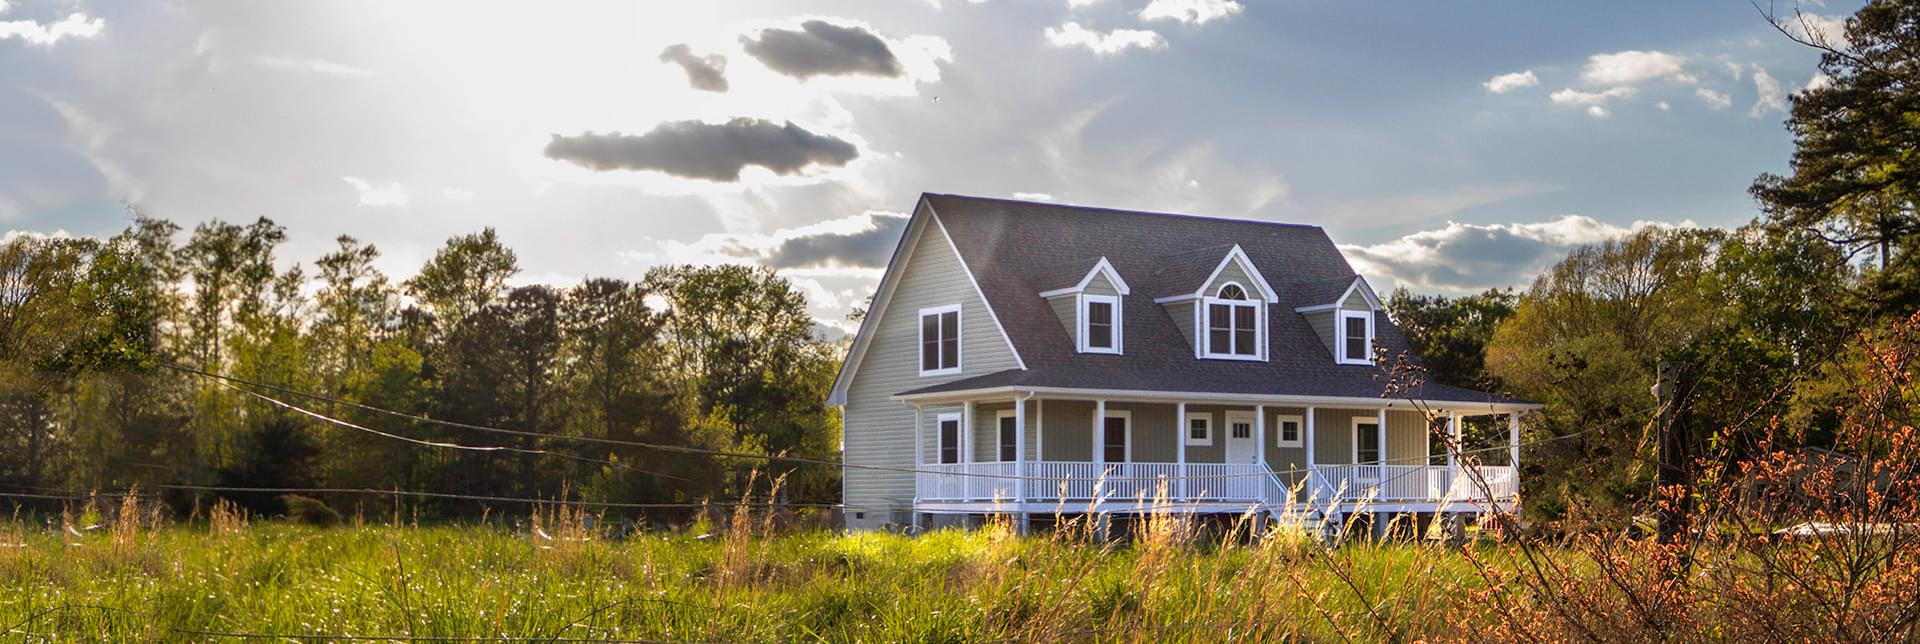 New Homes in Wilson County NC